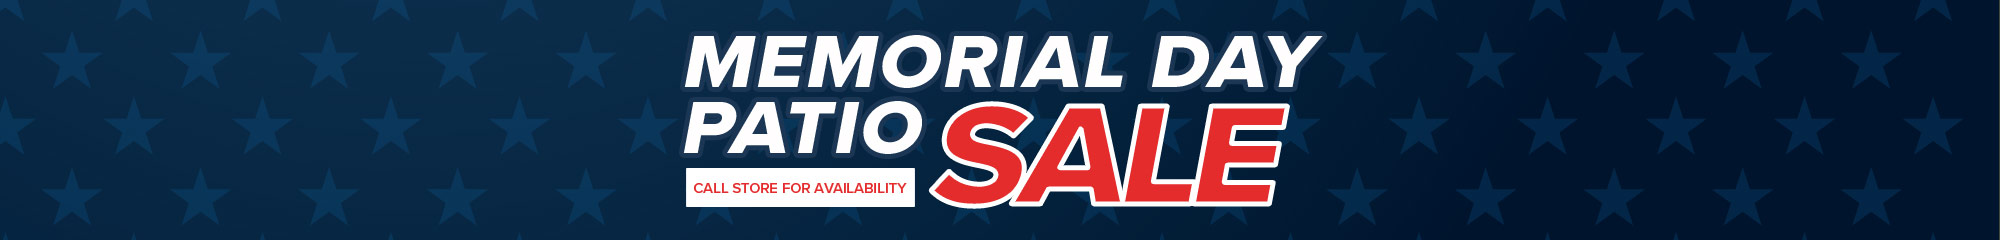 Memorial Day Patio Sale